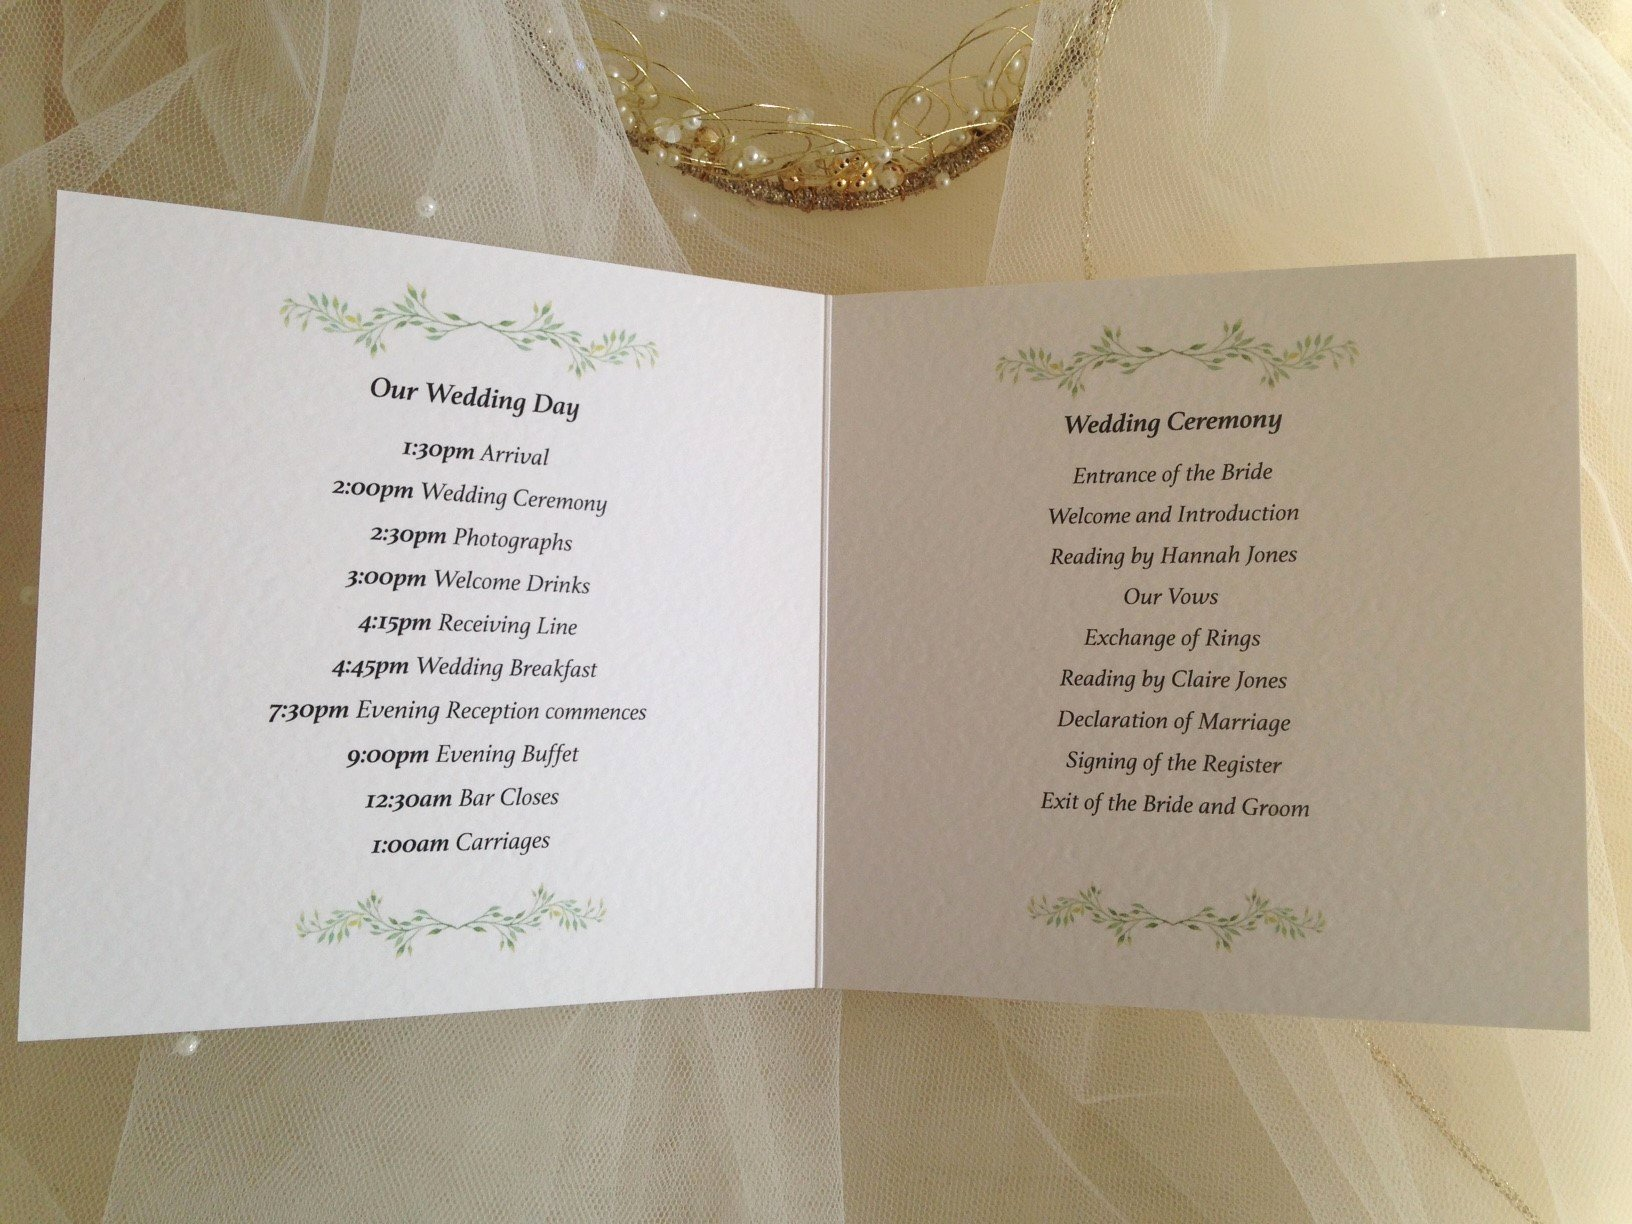 Wedding orders Of Service Template Lovely order Of Service Wedding Template Daisy Chain Invites